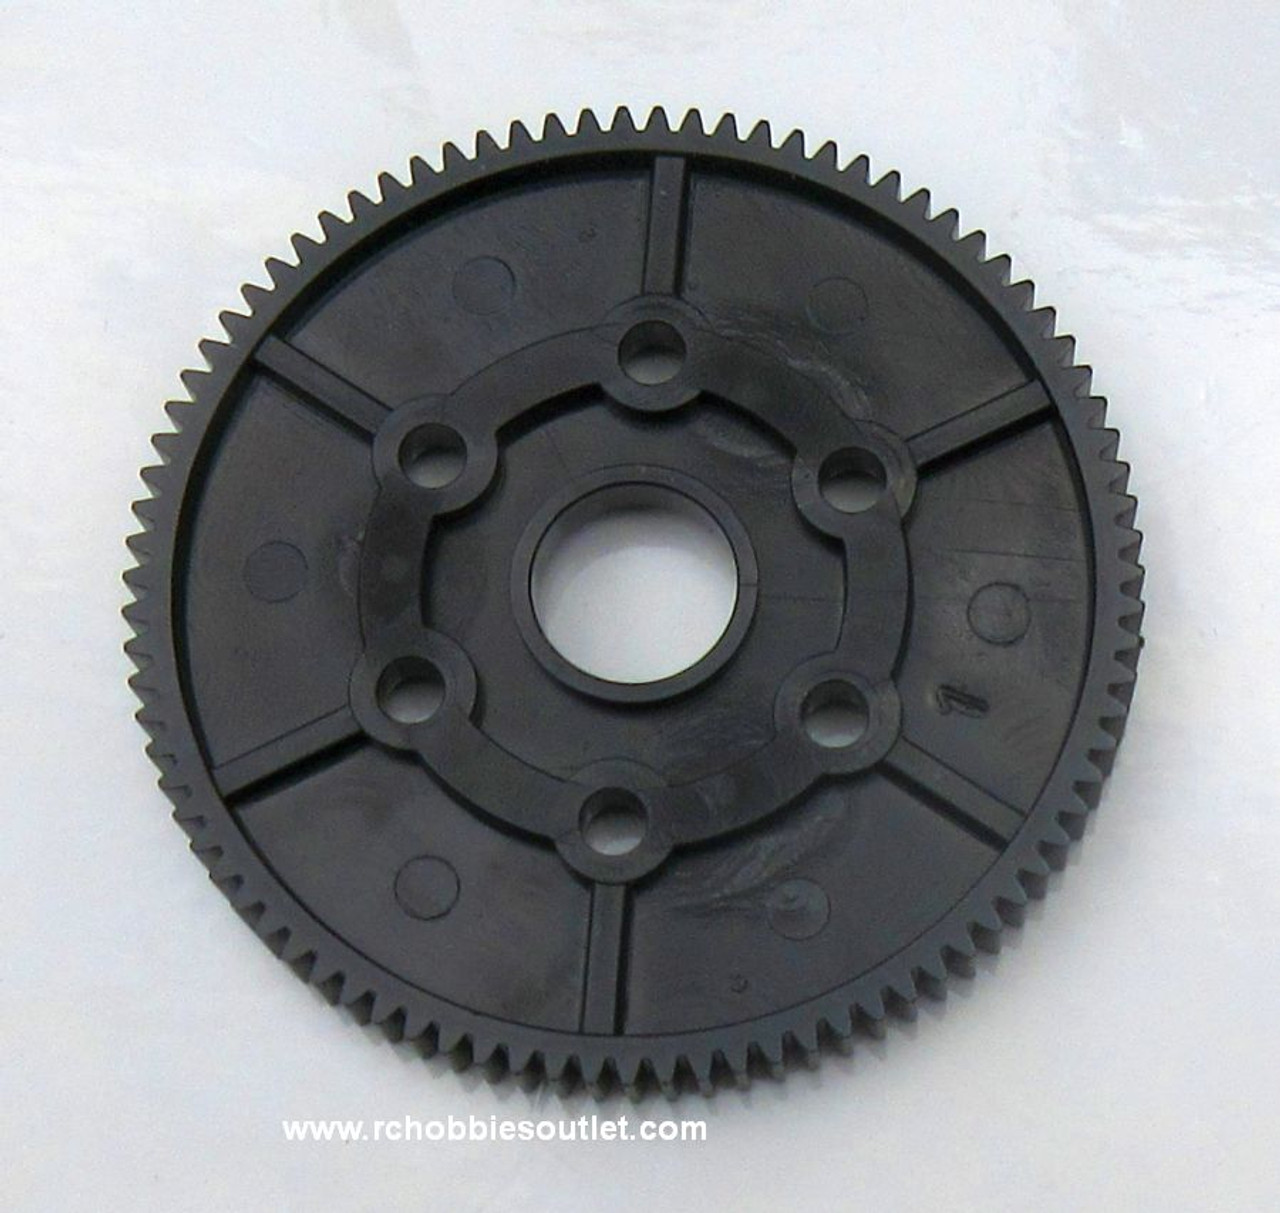 R86028 Main Gear Set (87T) for RGT 86100 Crawlers